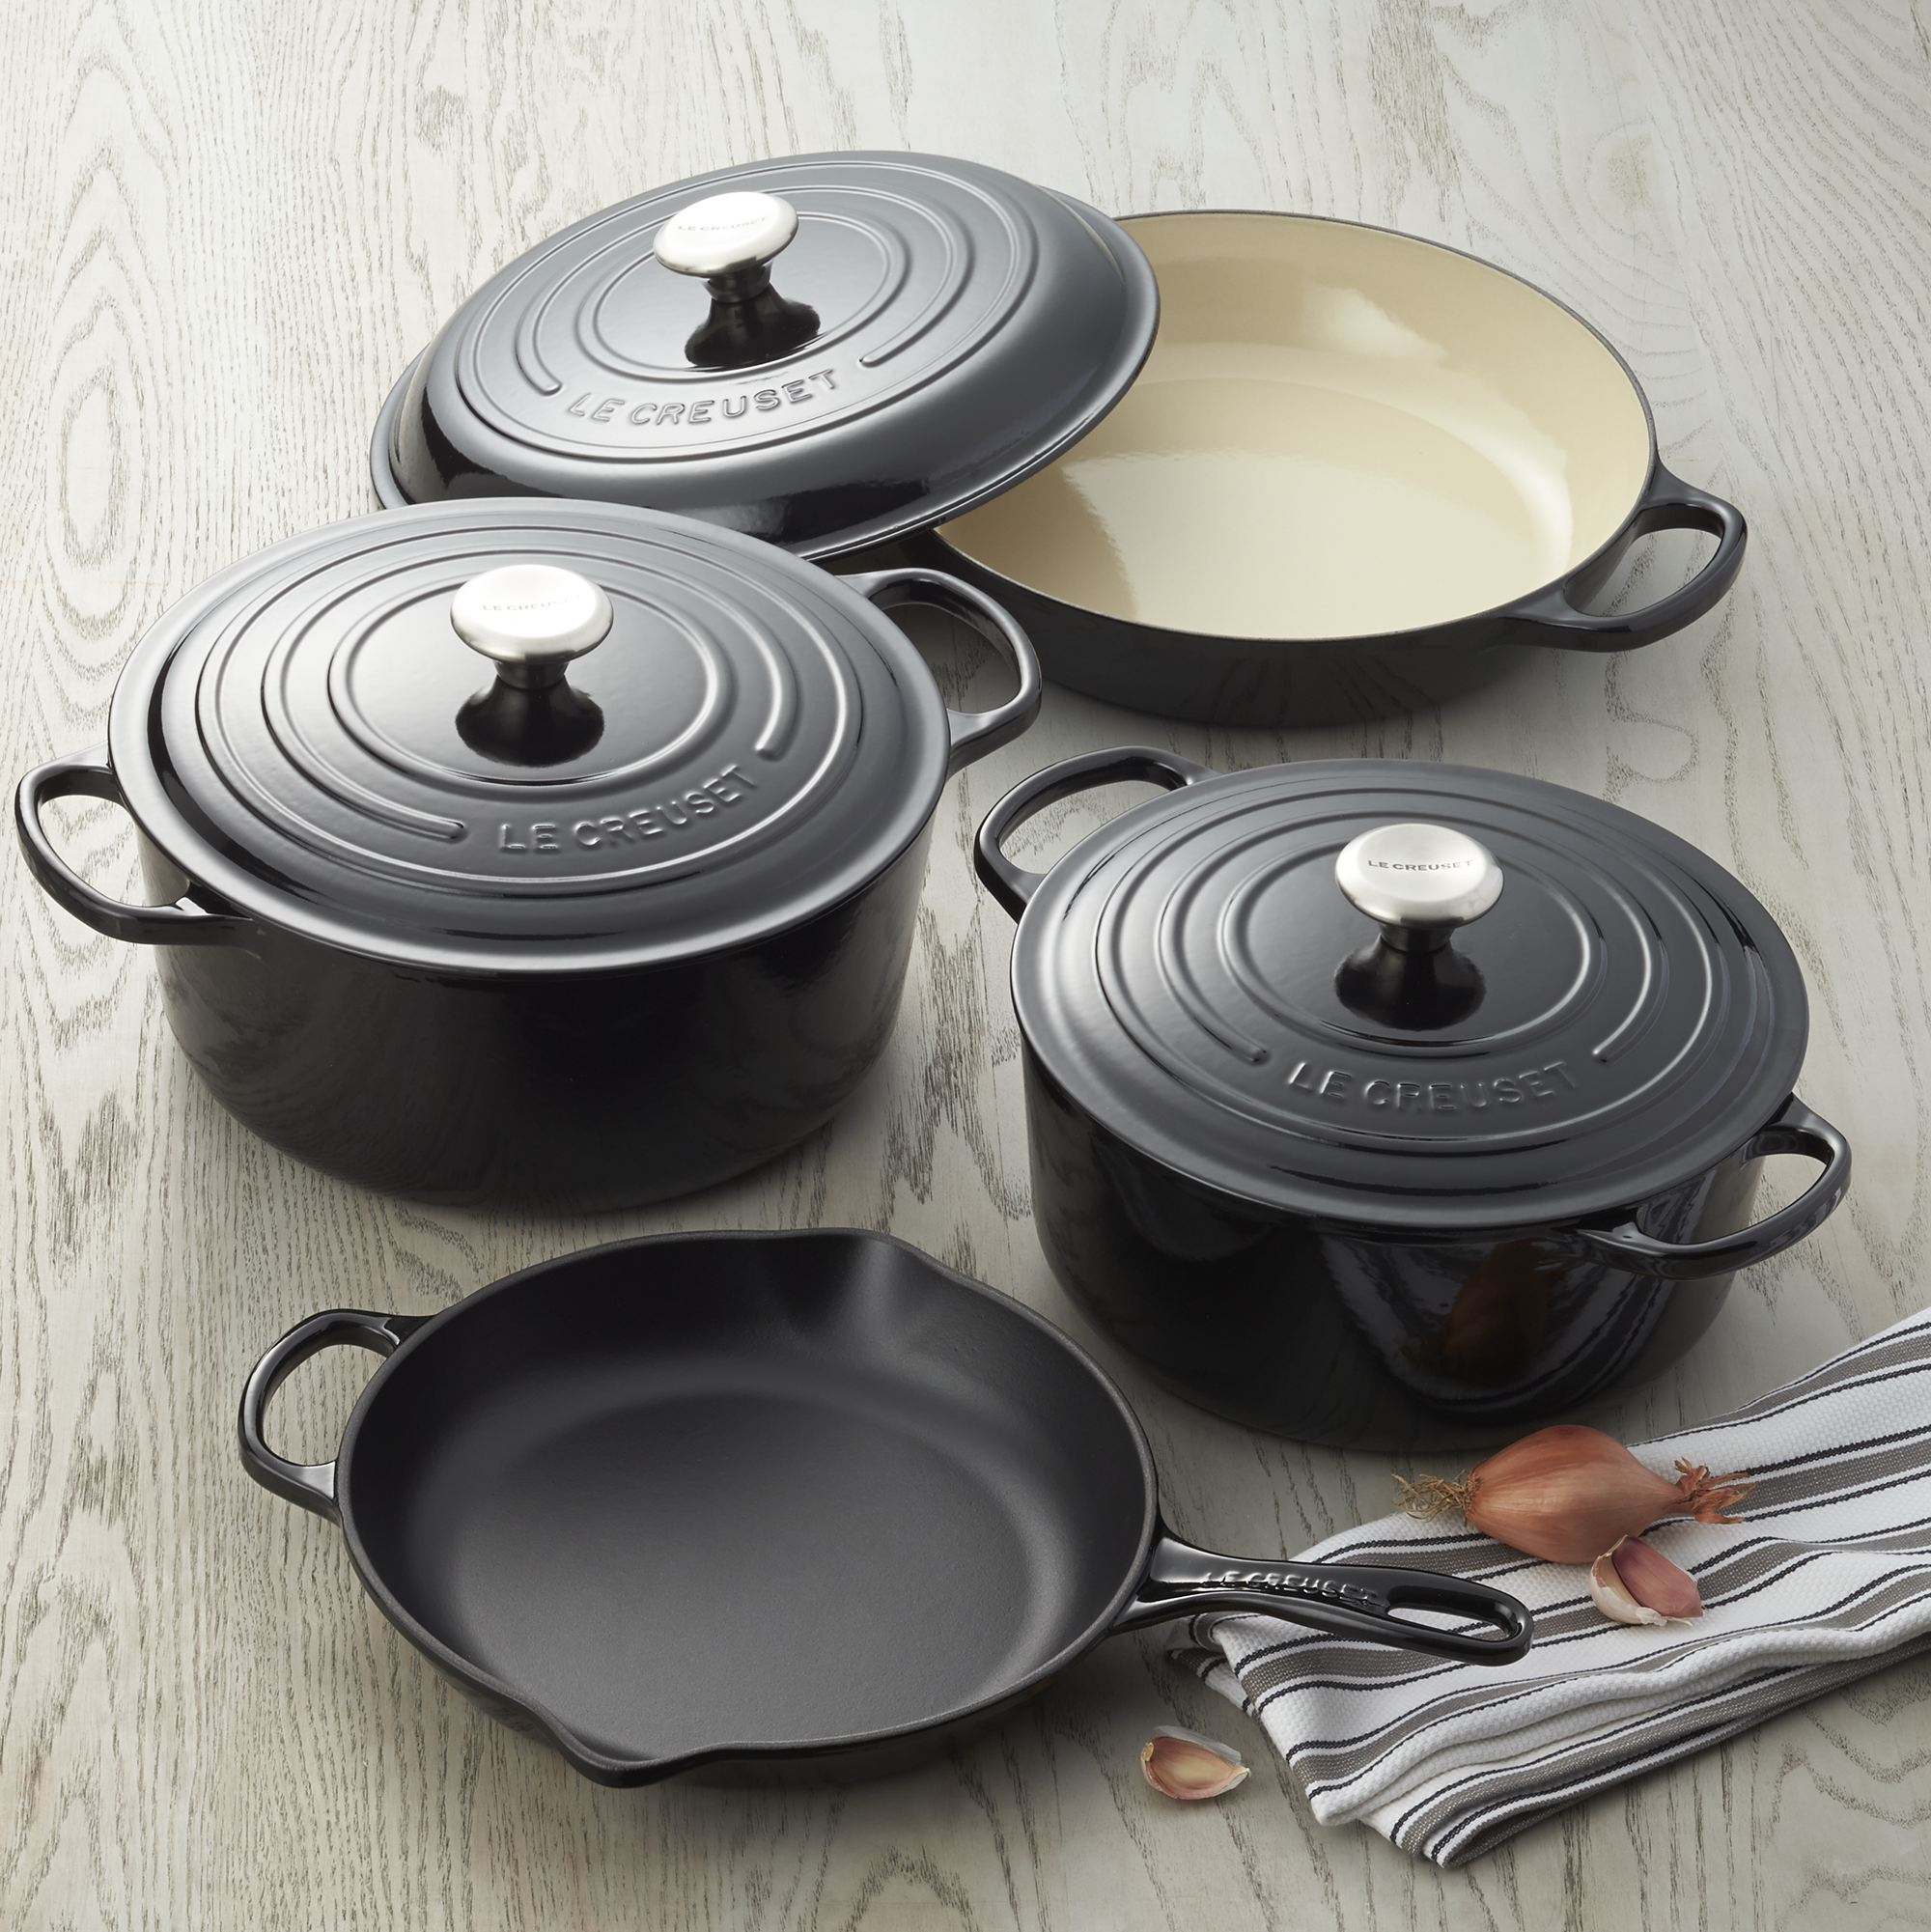 for a limited time only le creuset is offering its signature